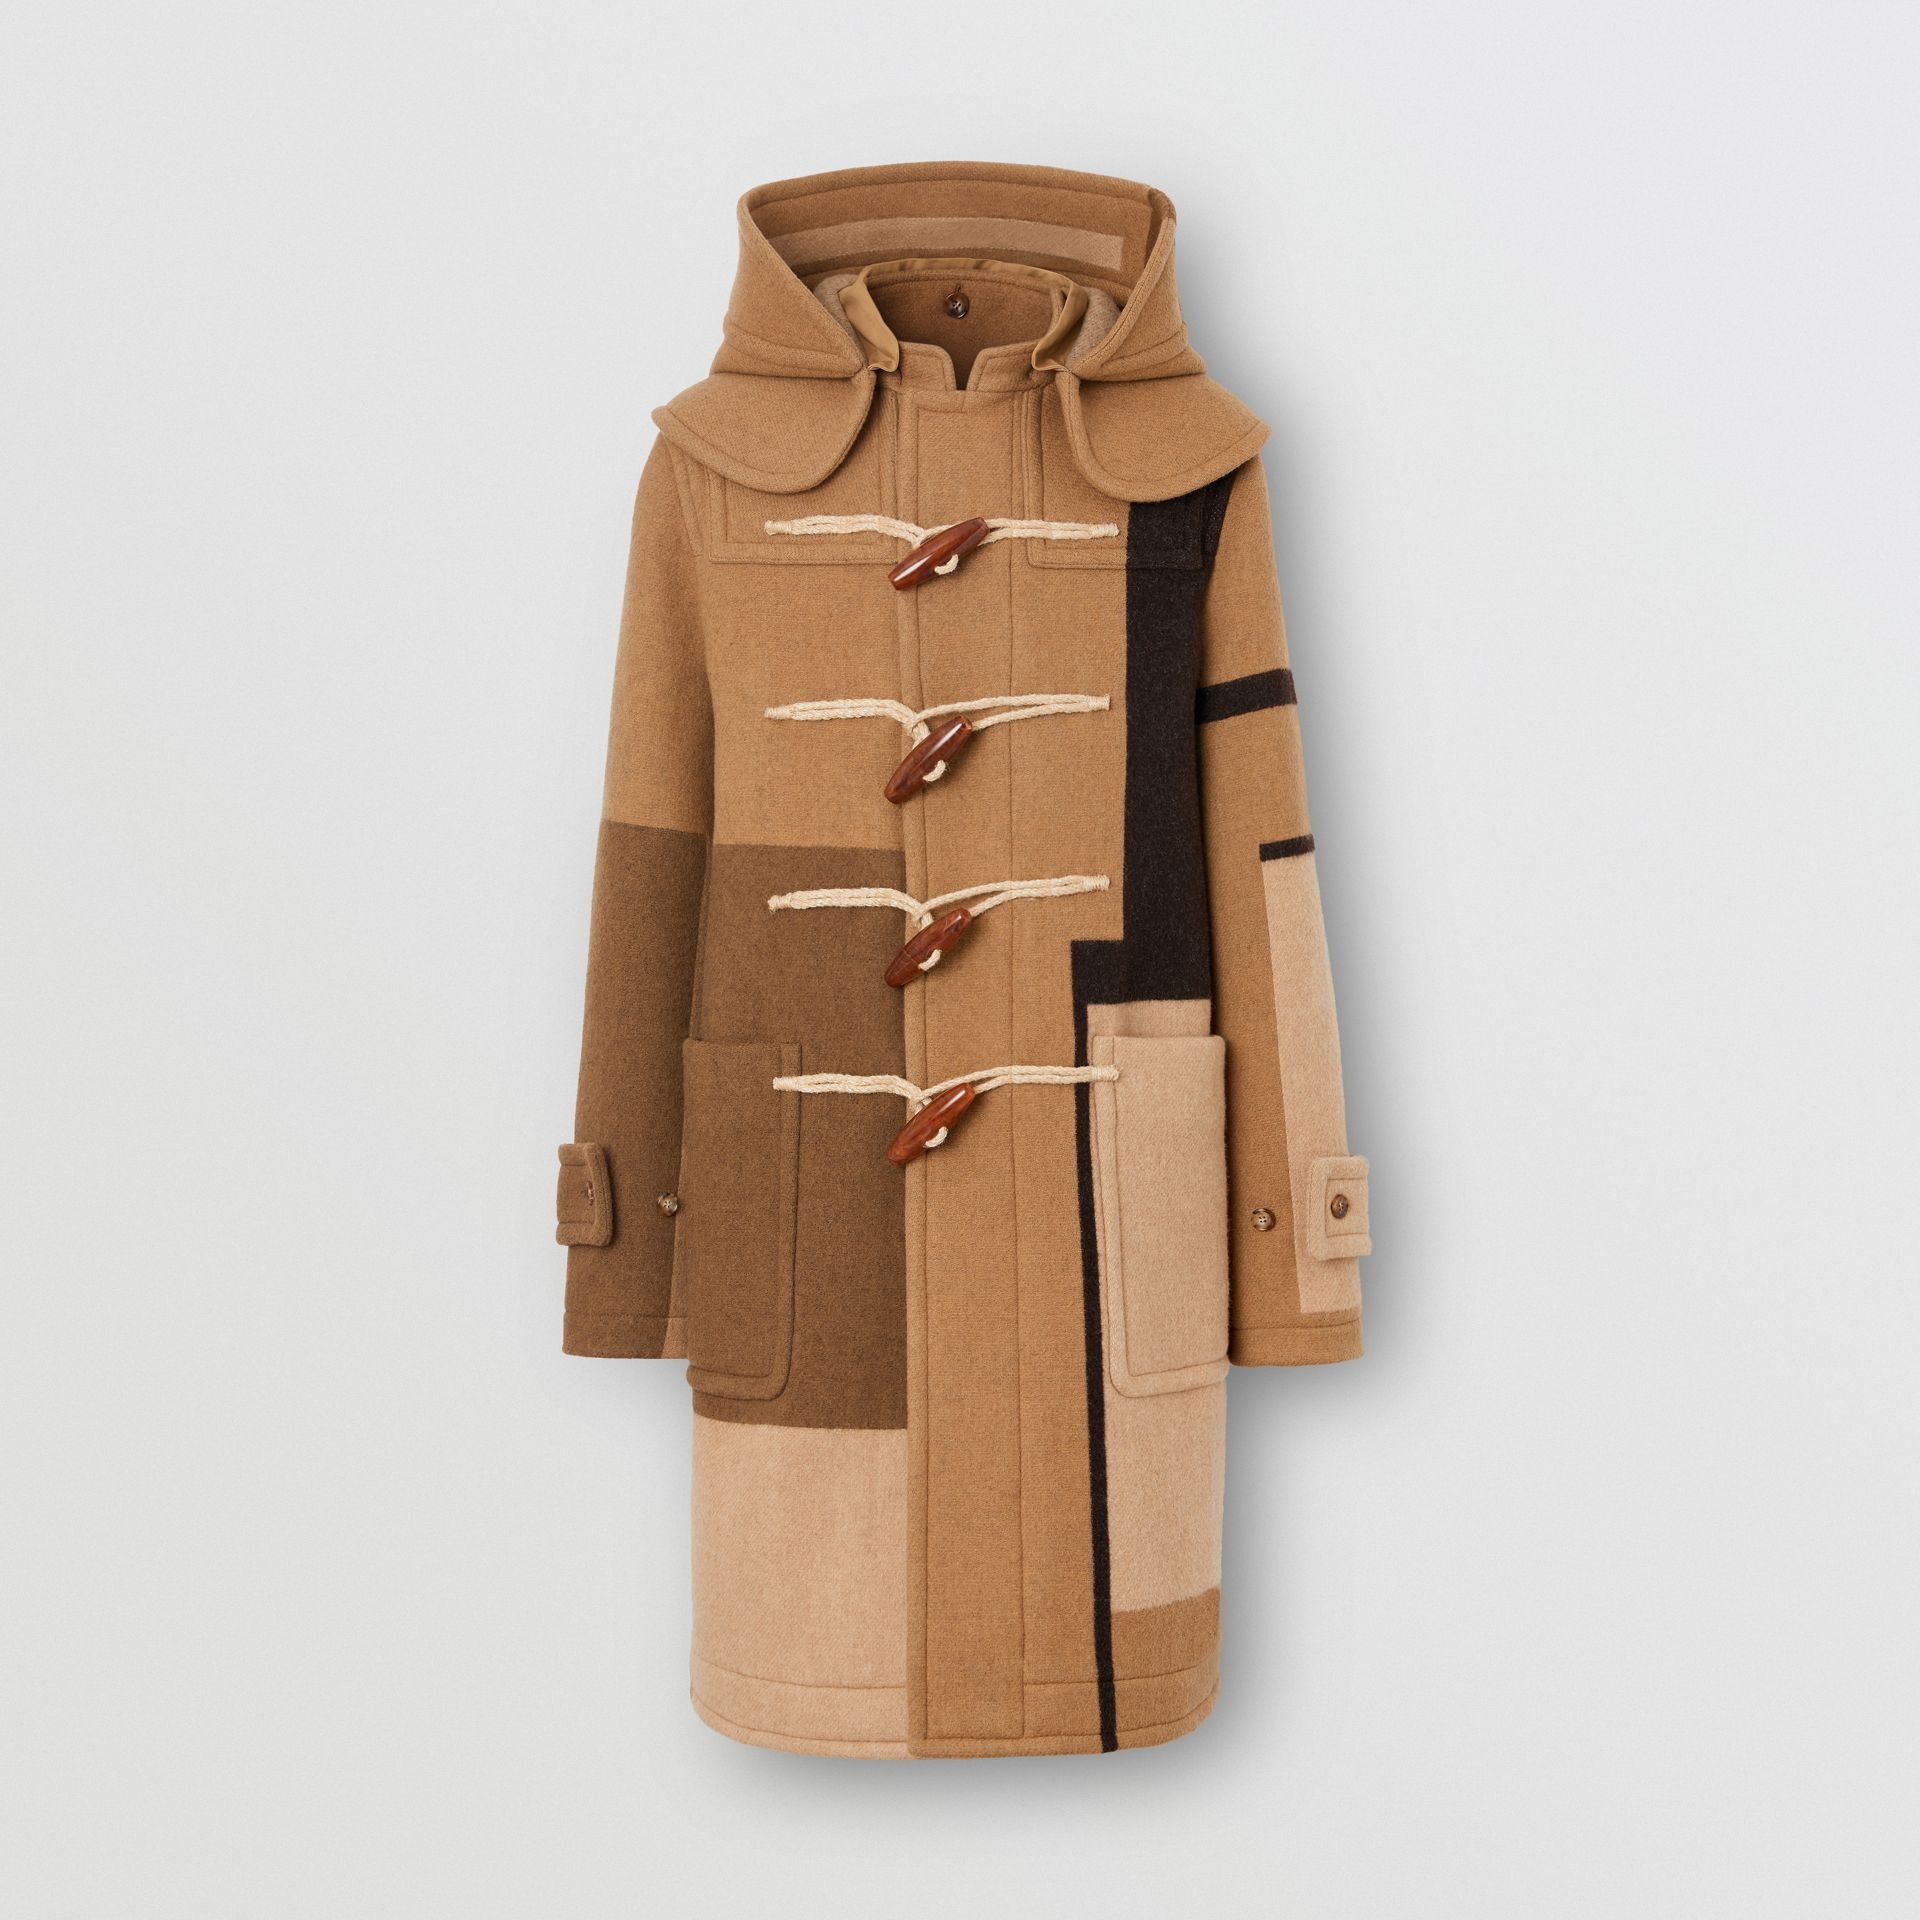 Panelled Wool Duffle Coat in Warm Camel - Men | Burberry Hong Kong S.A.R - gallery image 3